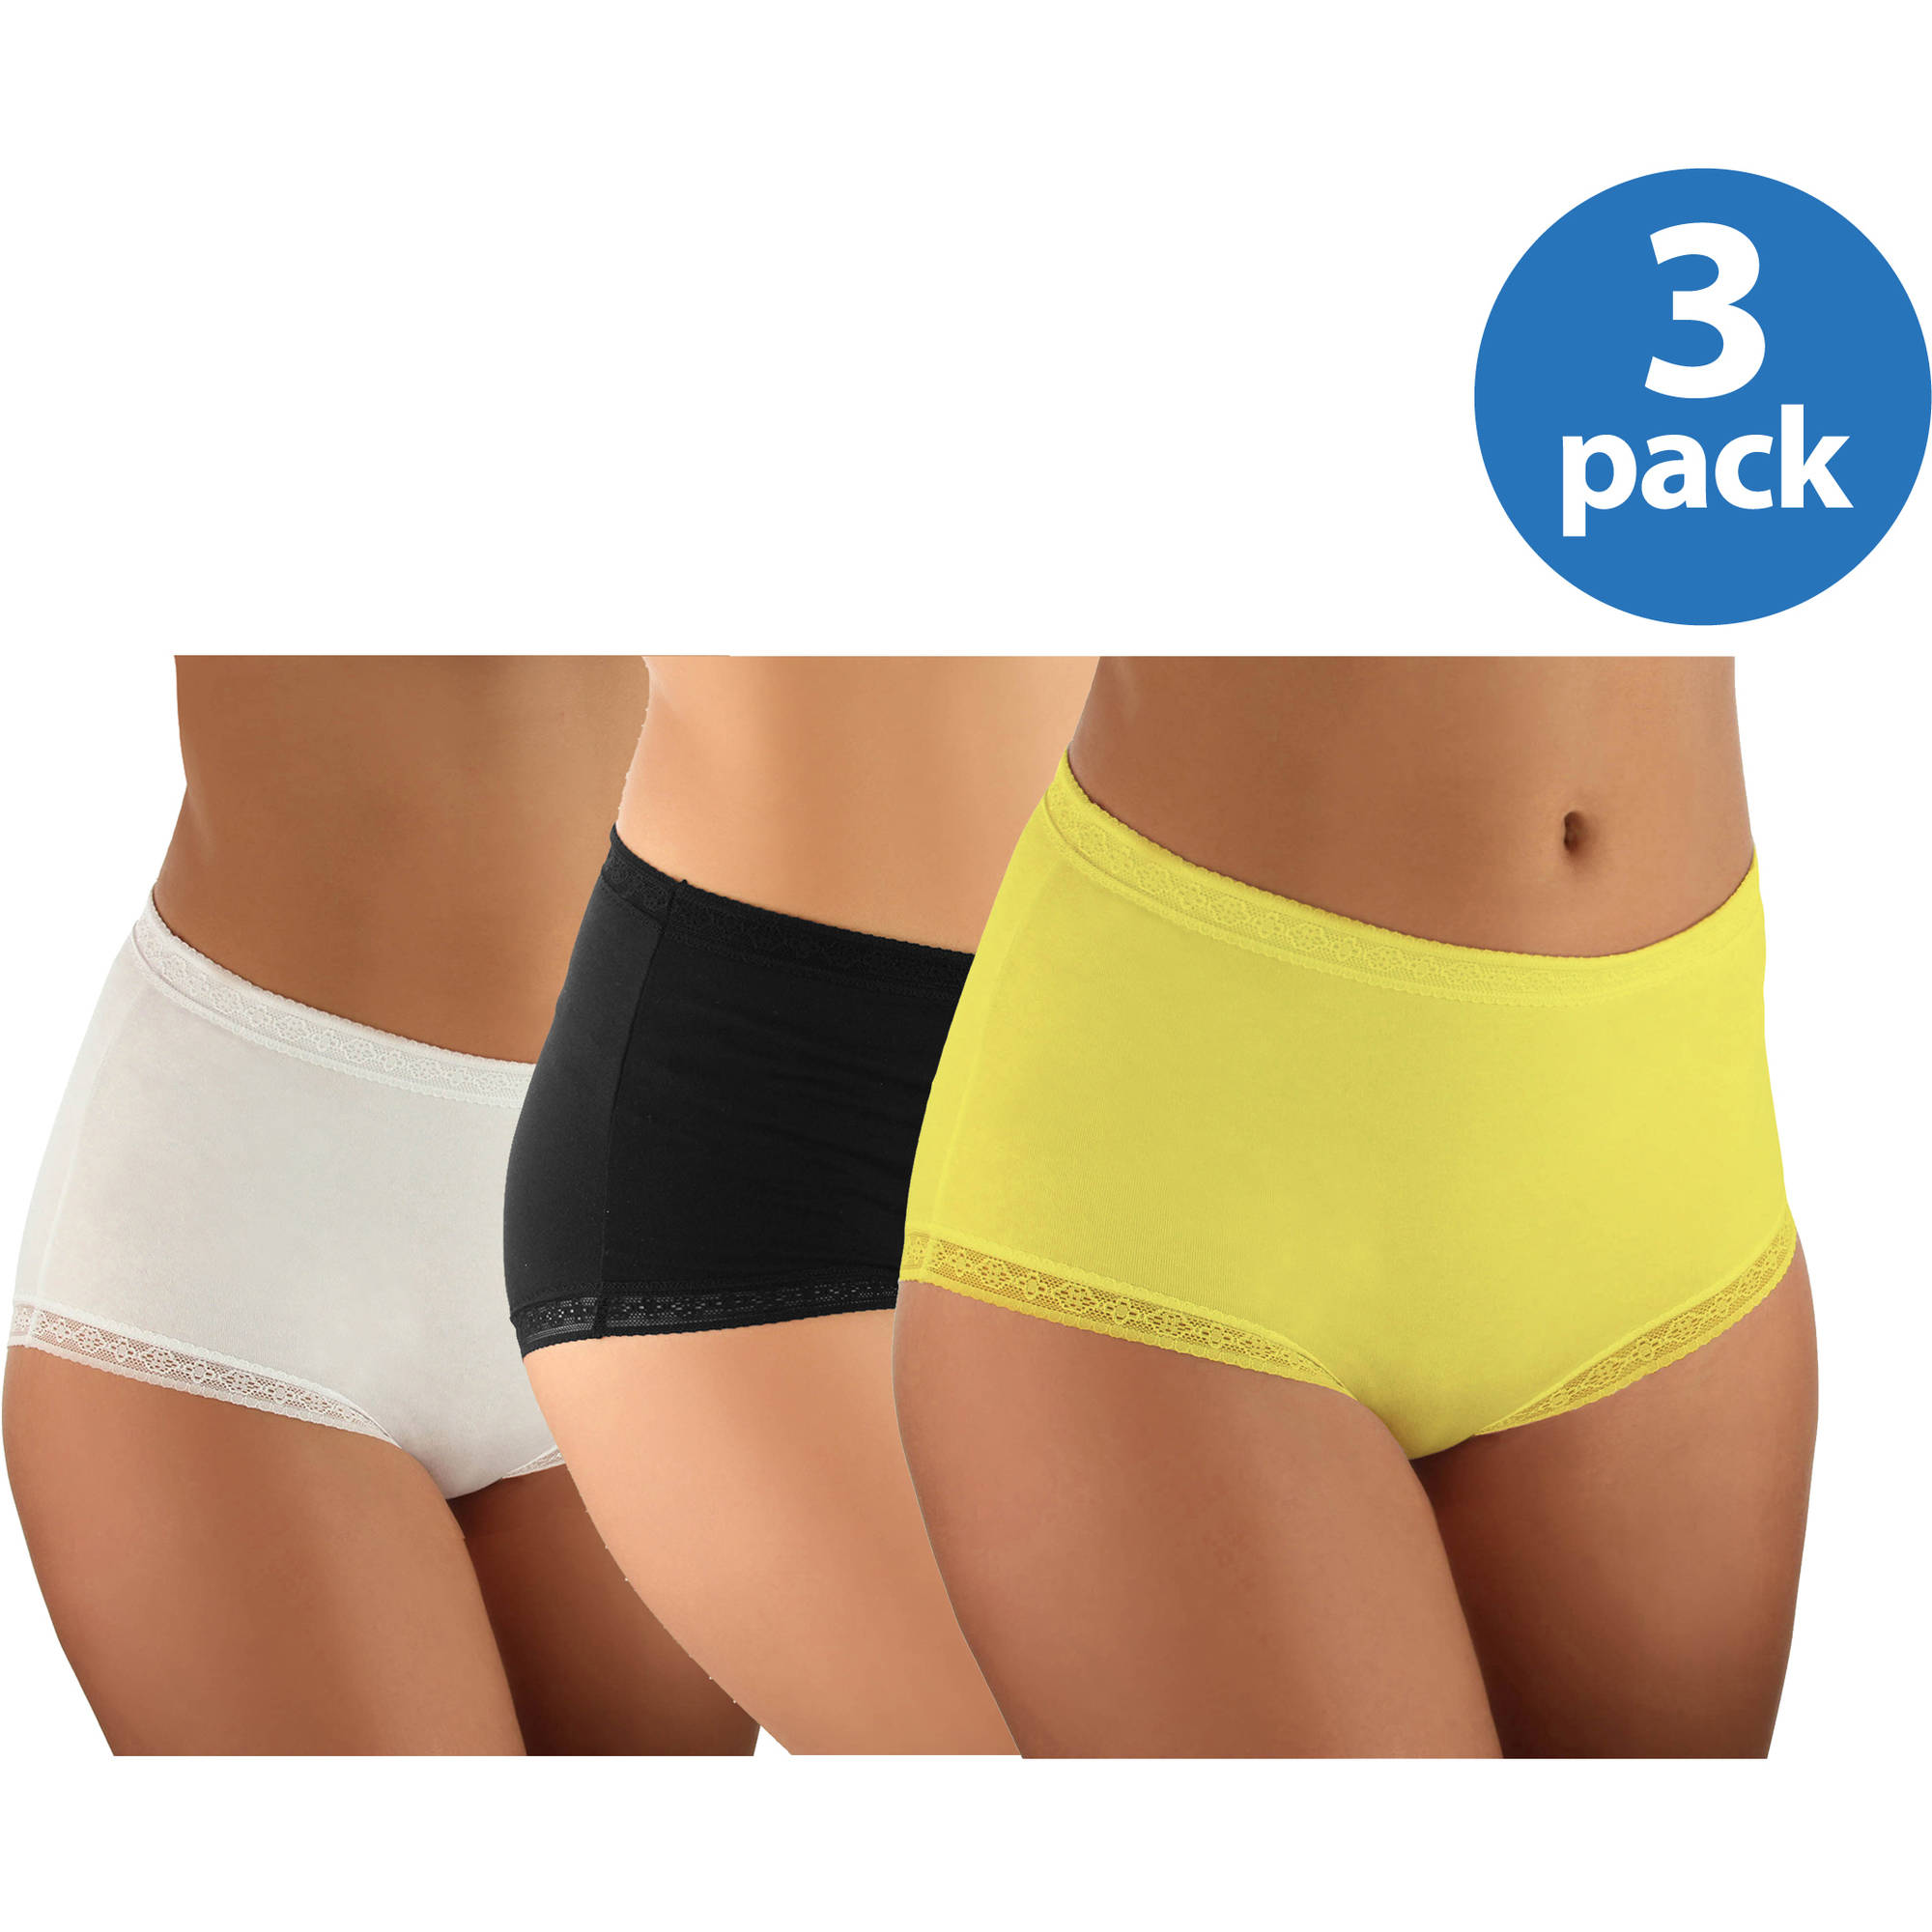 Best Fitting Women's Cotton w/Lace Brief, 3-Pack